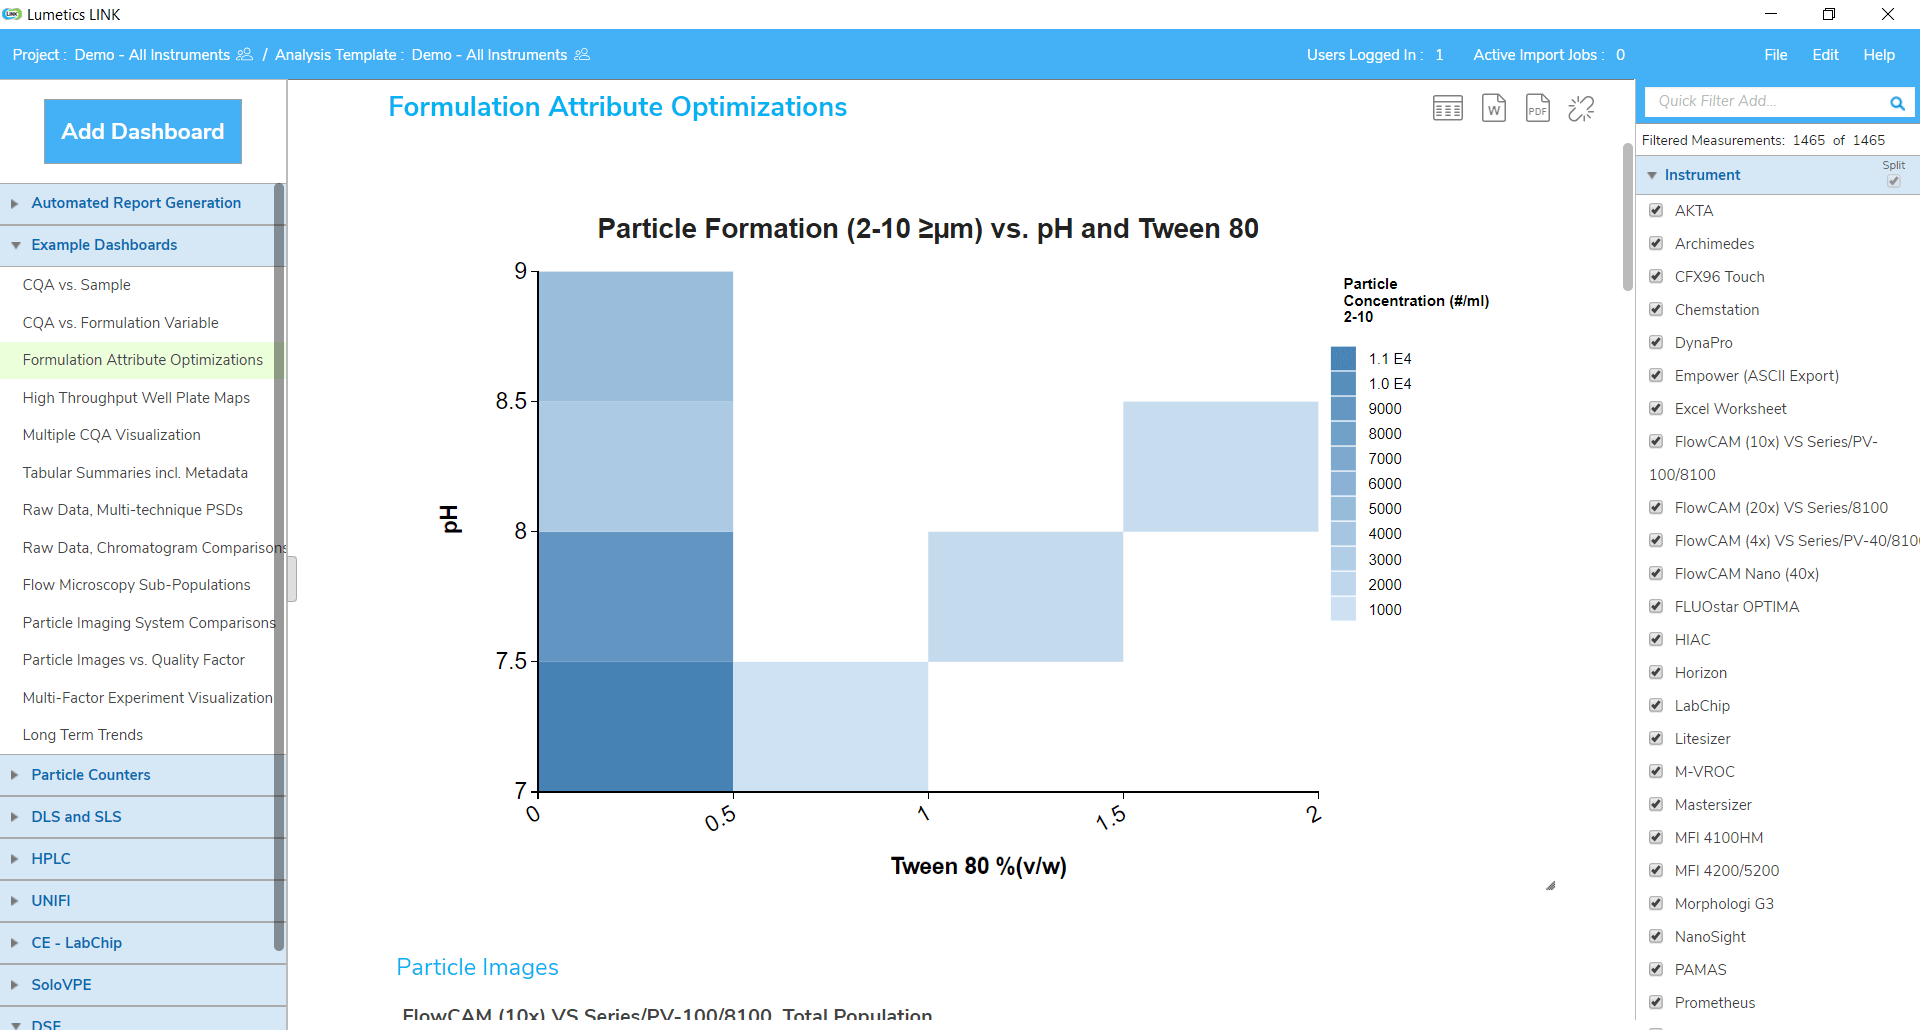 Formulation Attribute Optimizations